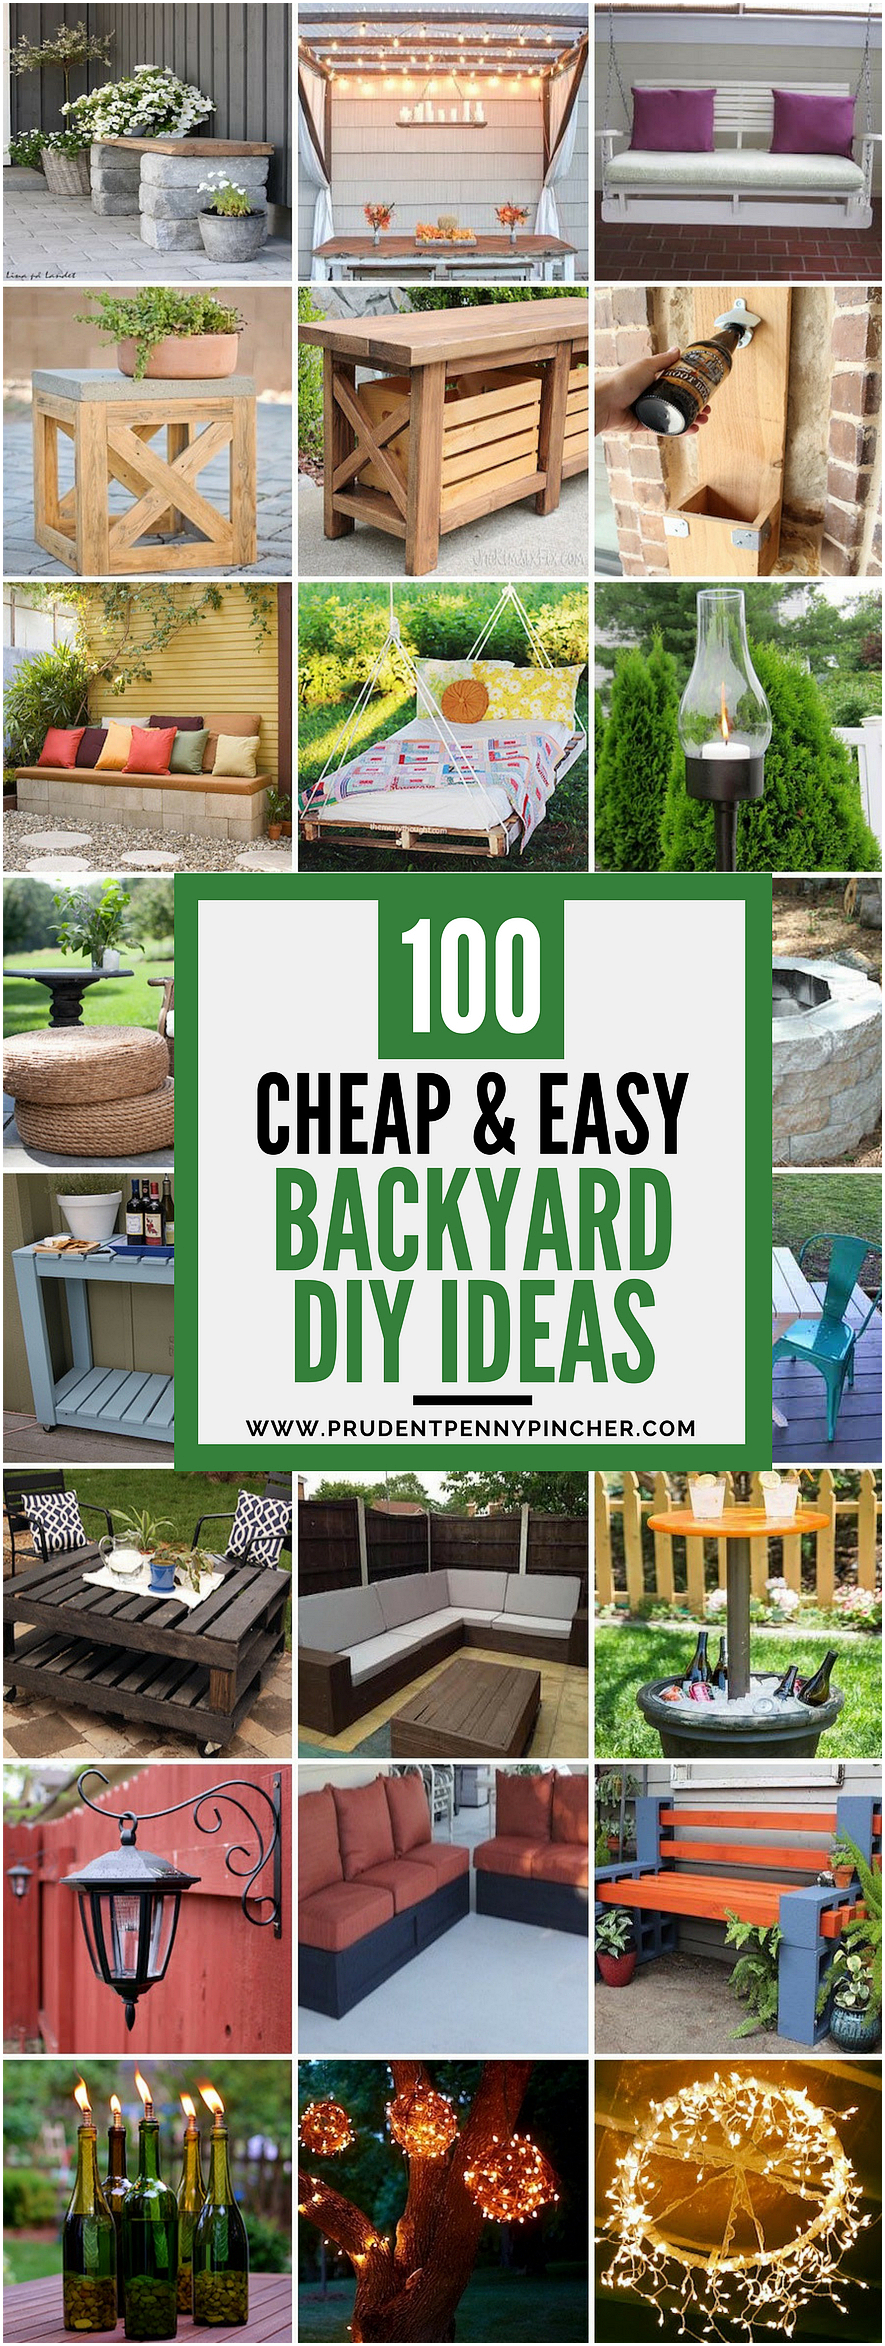 cheap and easy diy backyard ideas prudent penny pincher diy regarding 12 clever concepts of how to make diy backyard landscaping via Simphome.com